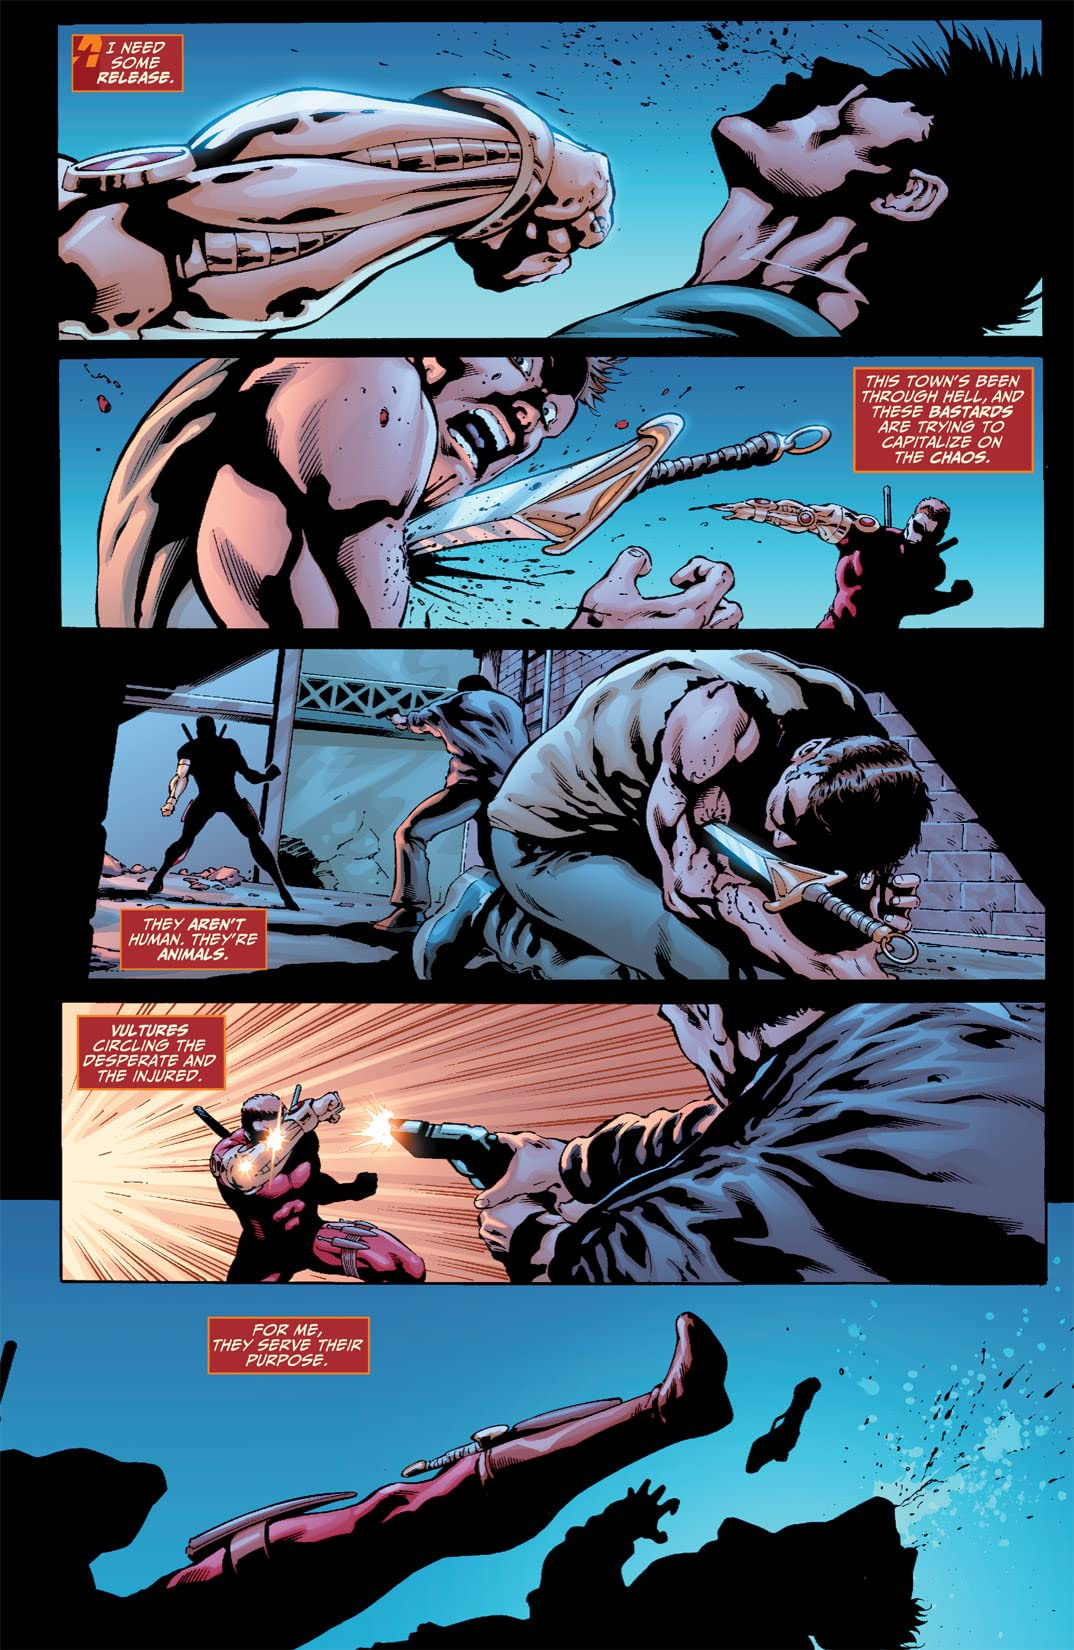 Justice League: The Rise of Arsenal #3 (of 4)